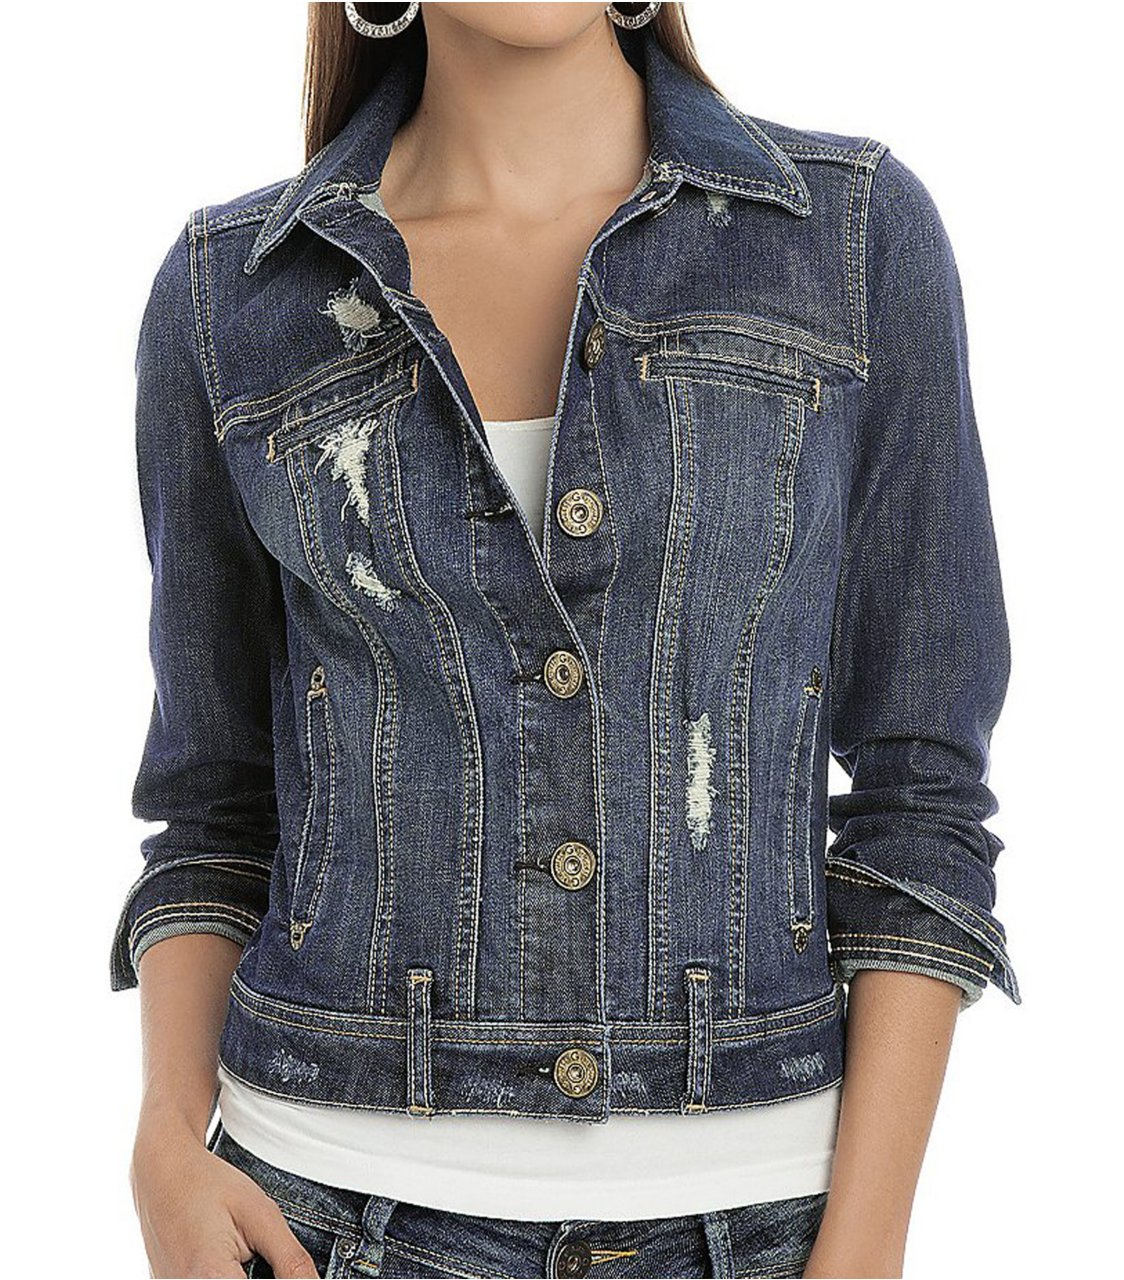 G by GUESS Trespasser Denim Jacket, DARK DESTROY WASH (XS)